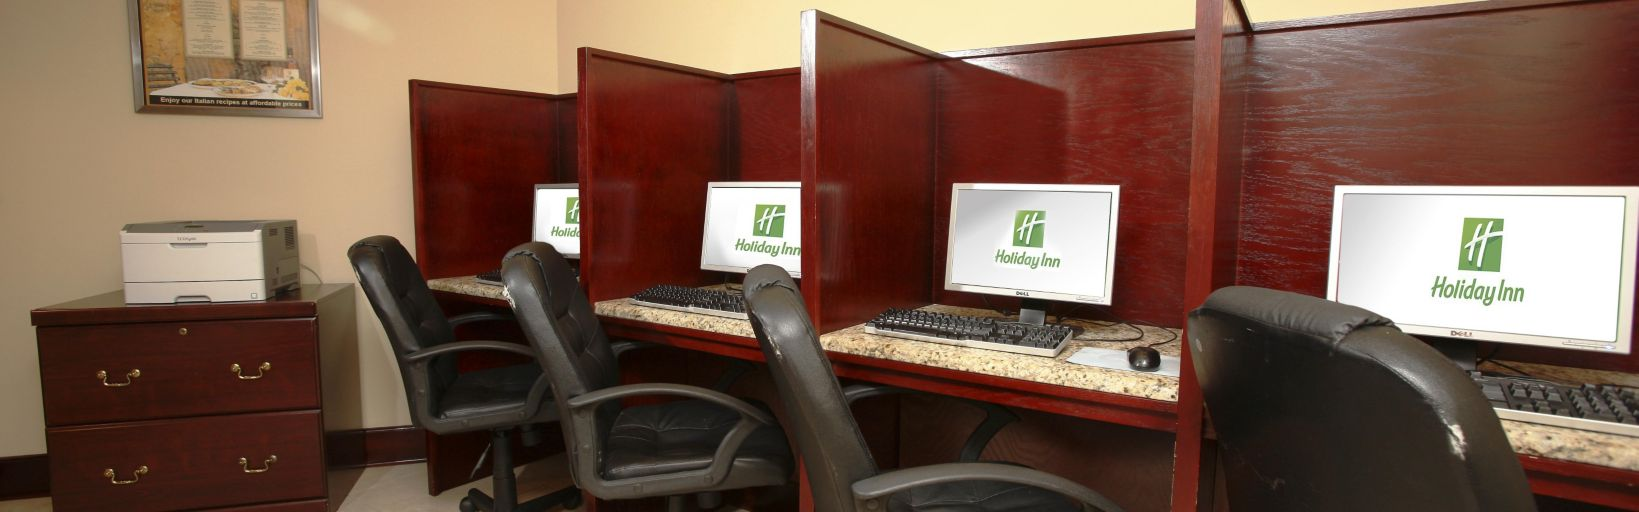 Check Your Email In Our New Business Center 12 of 17